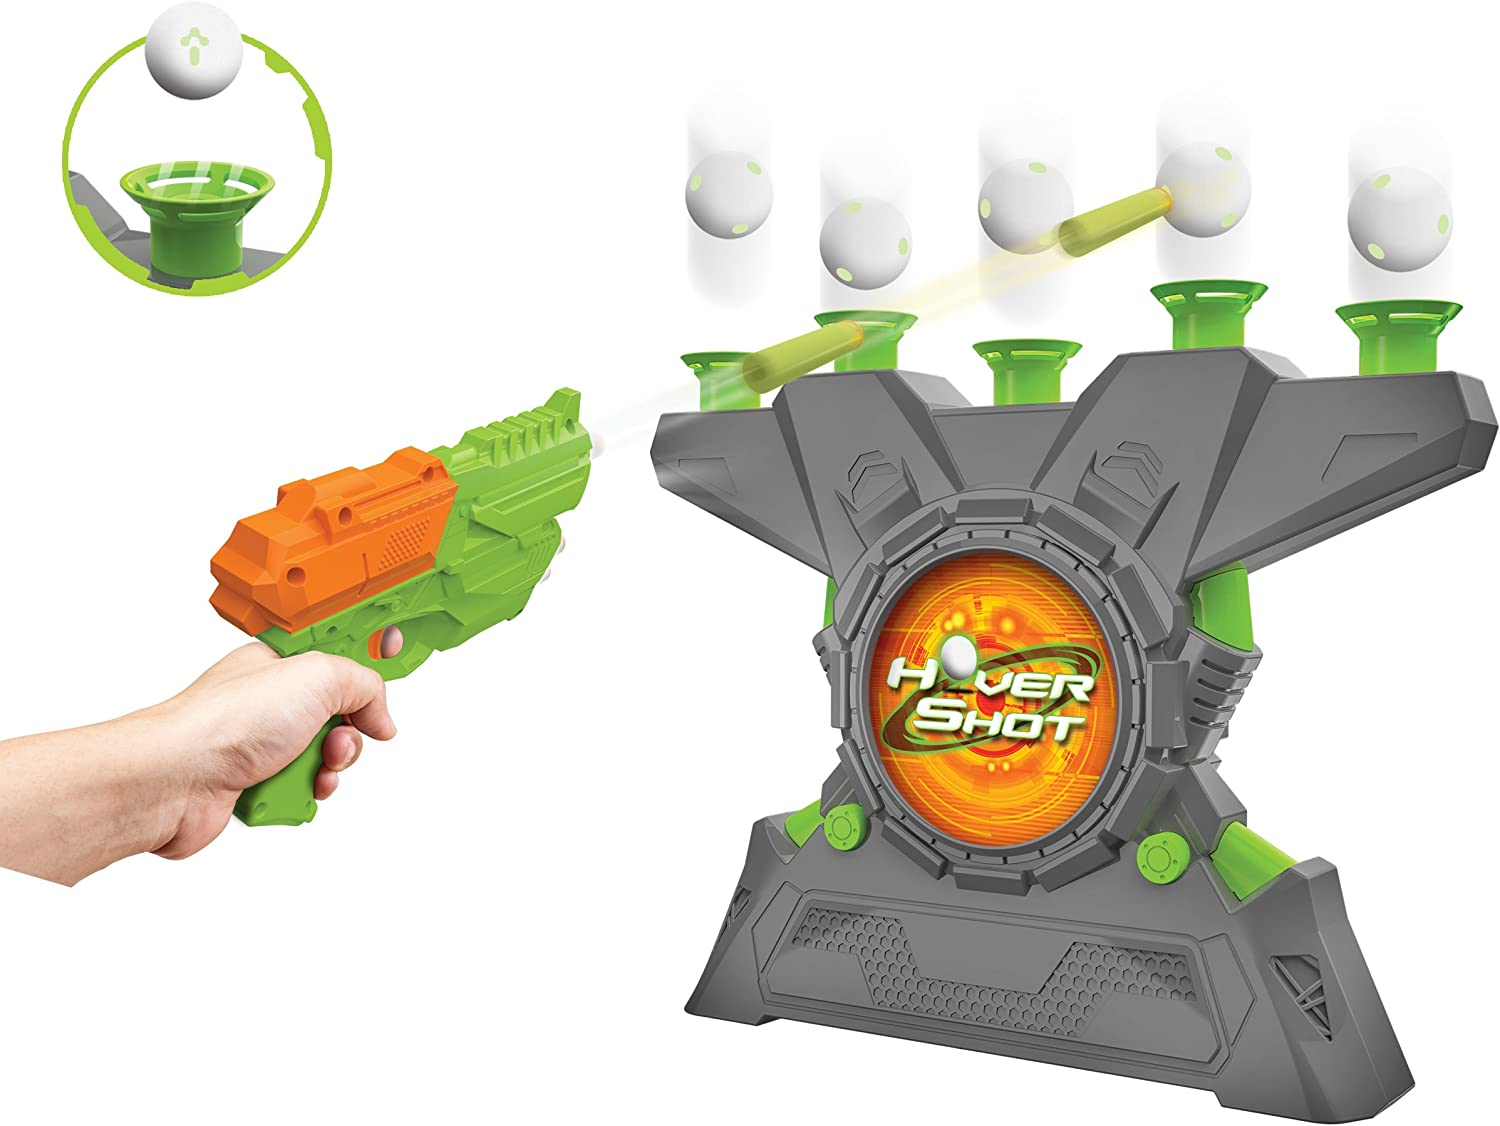 Amazon Com Merchant Ambassador Hover Shot 2 0 Game Air Powered Blaster Foam Darts With Glow In The Dark Targets Toys Games